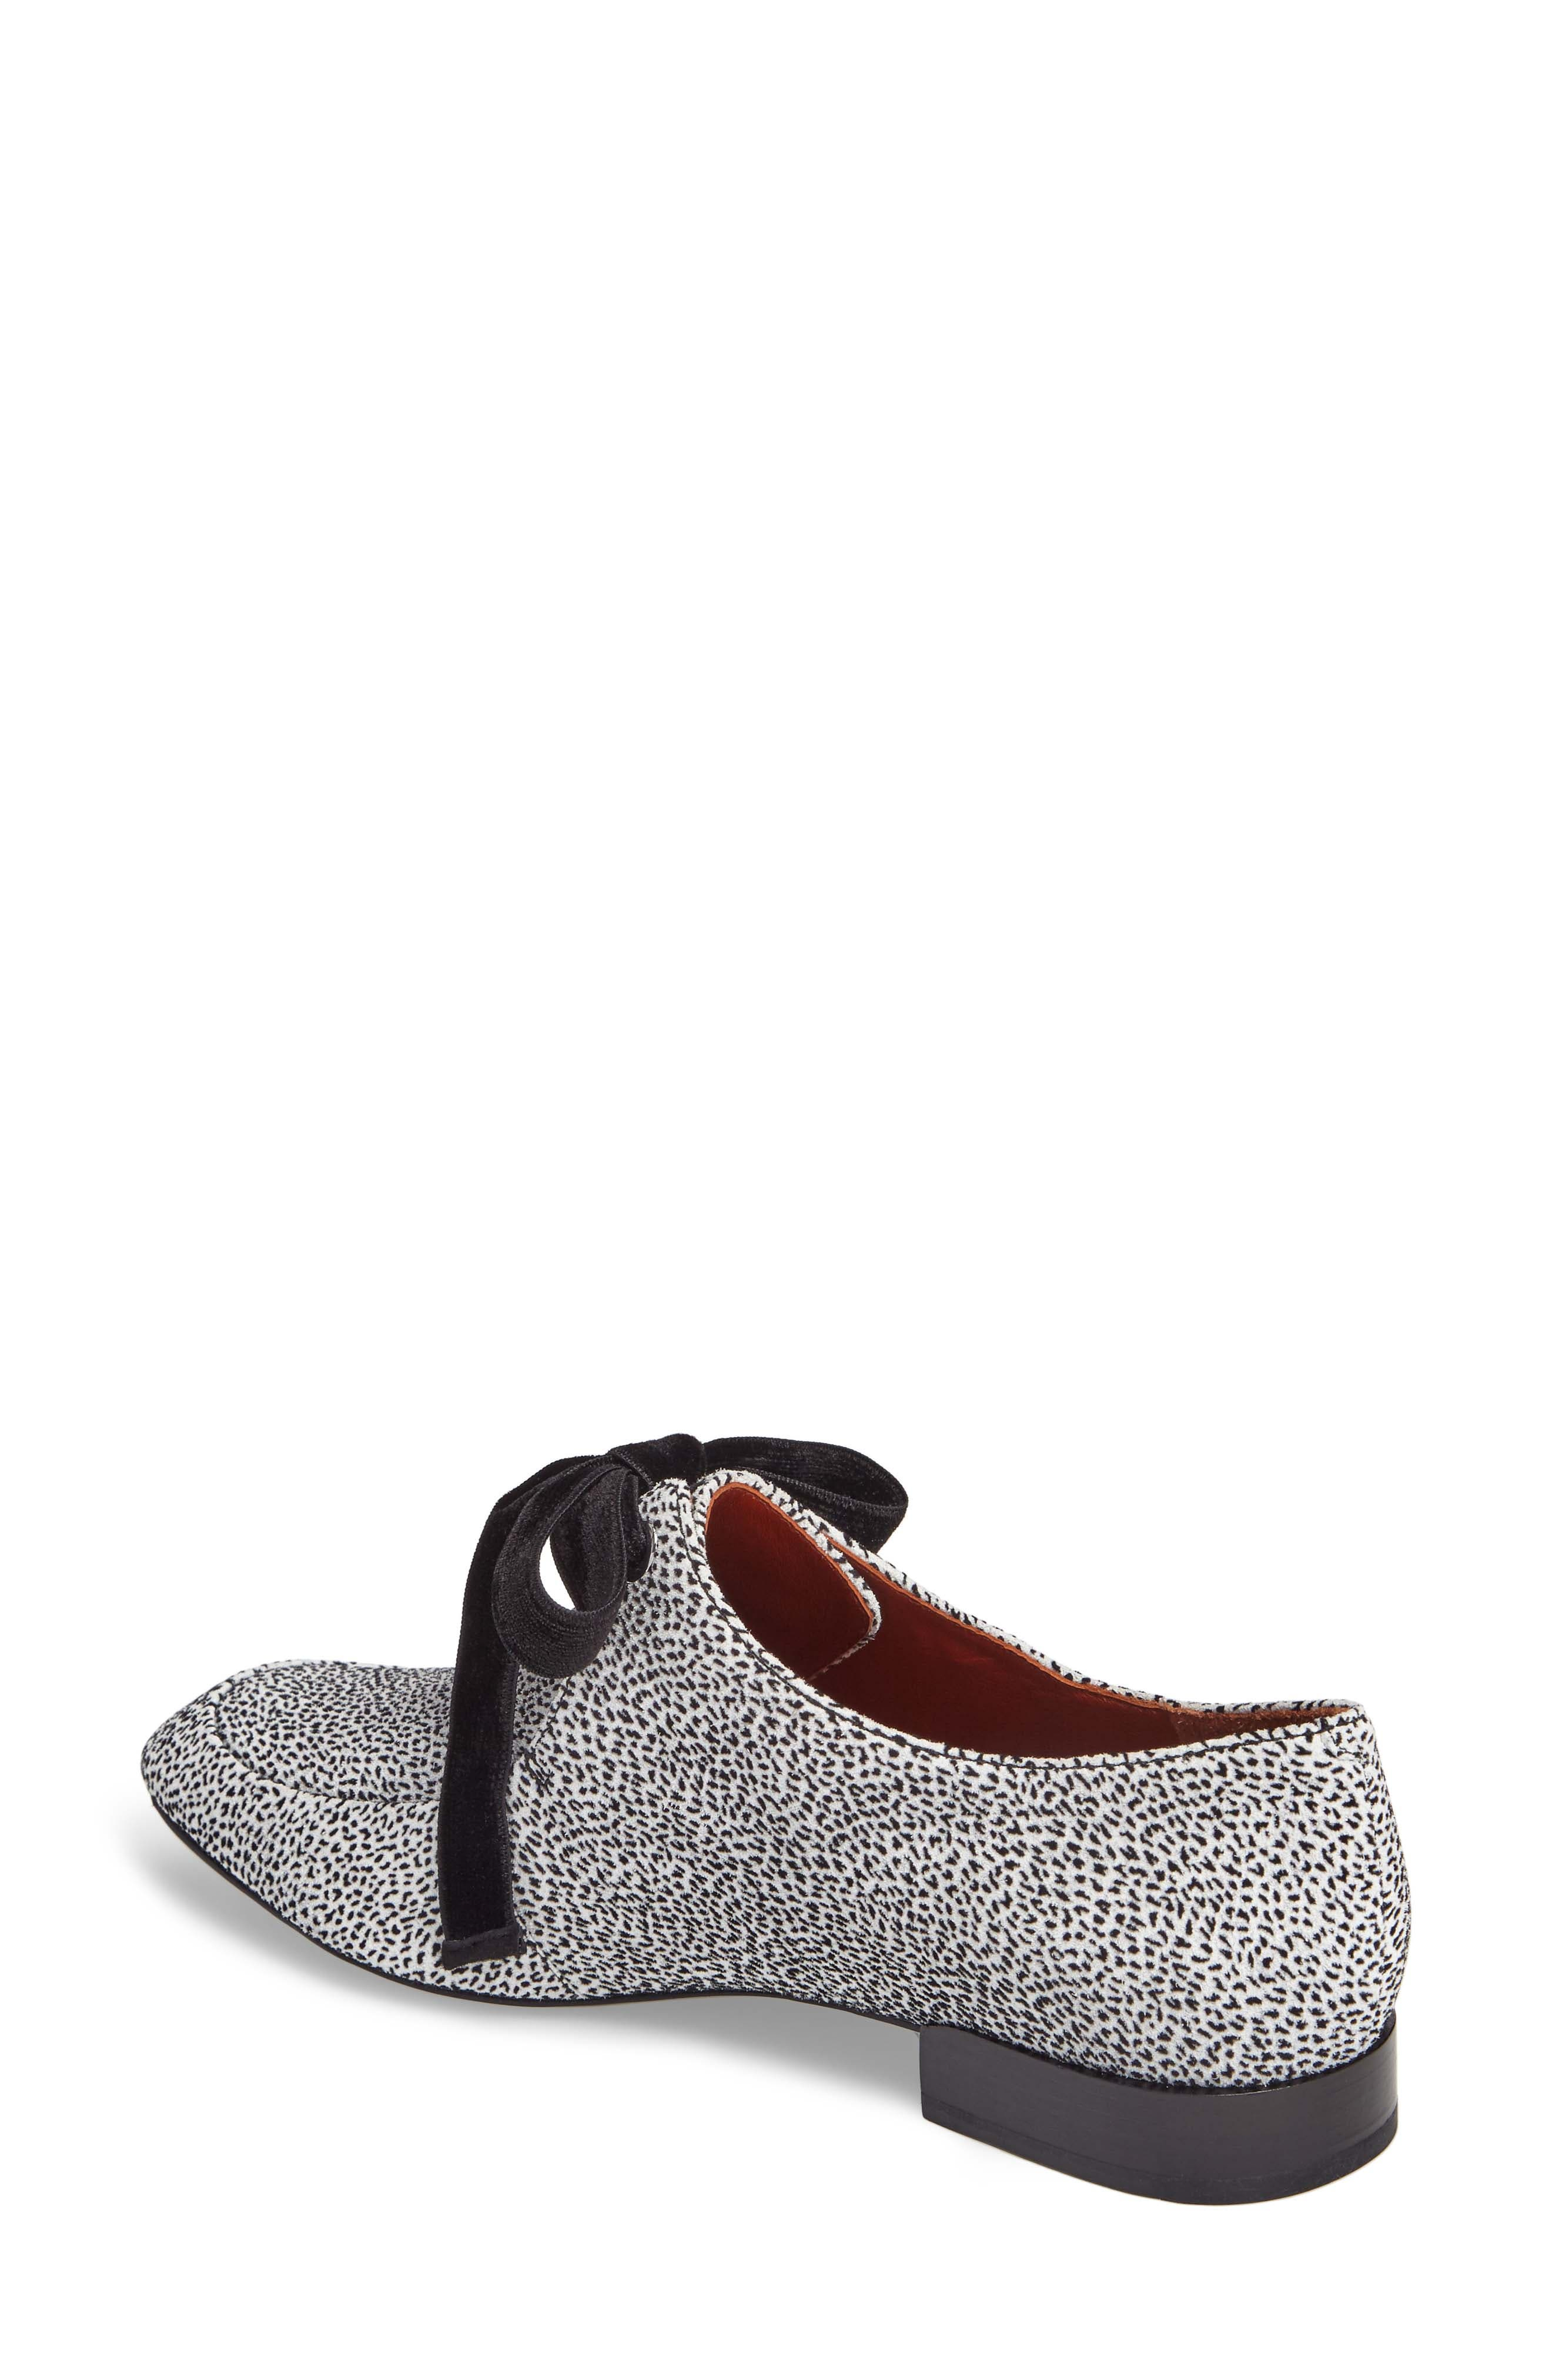 Alternate Image 2  - 3.1 Philip Lim Velvet Bow Loafer (Women)